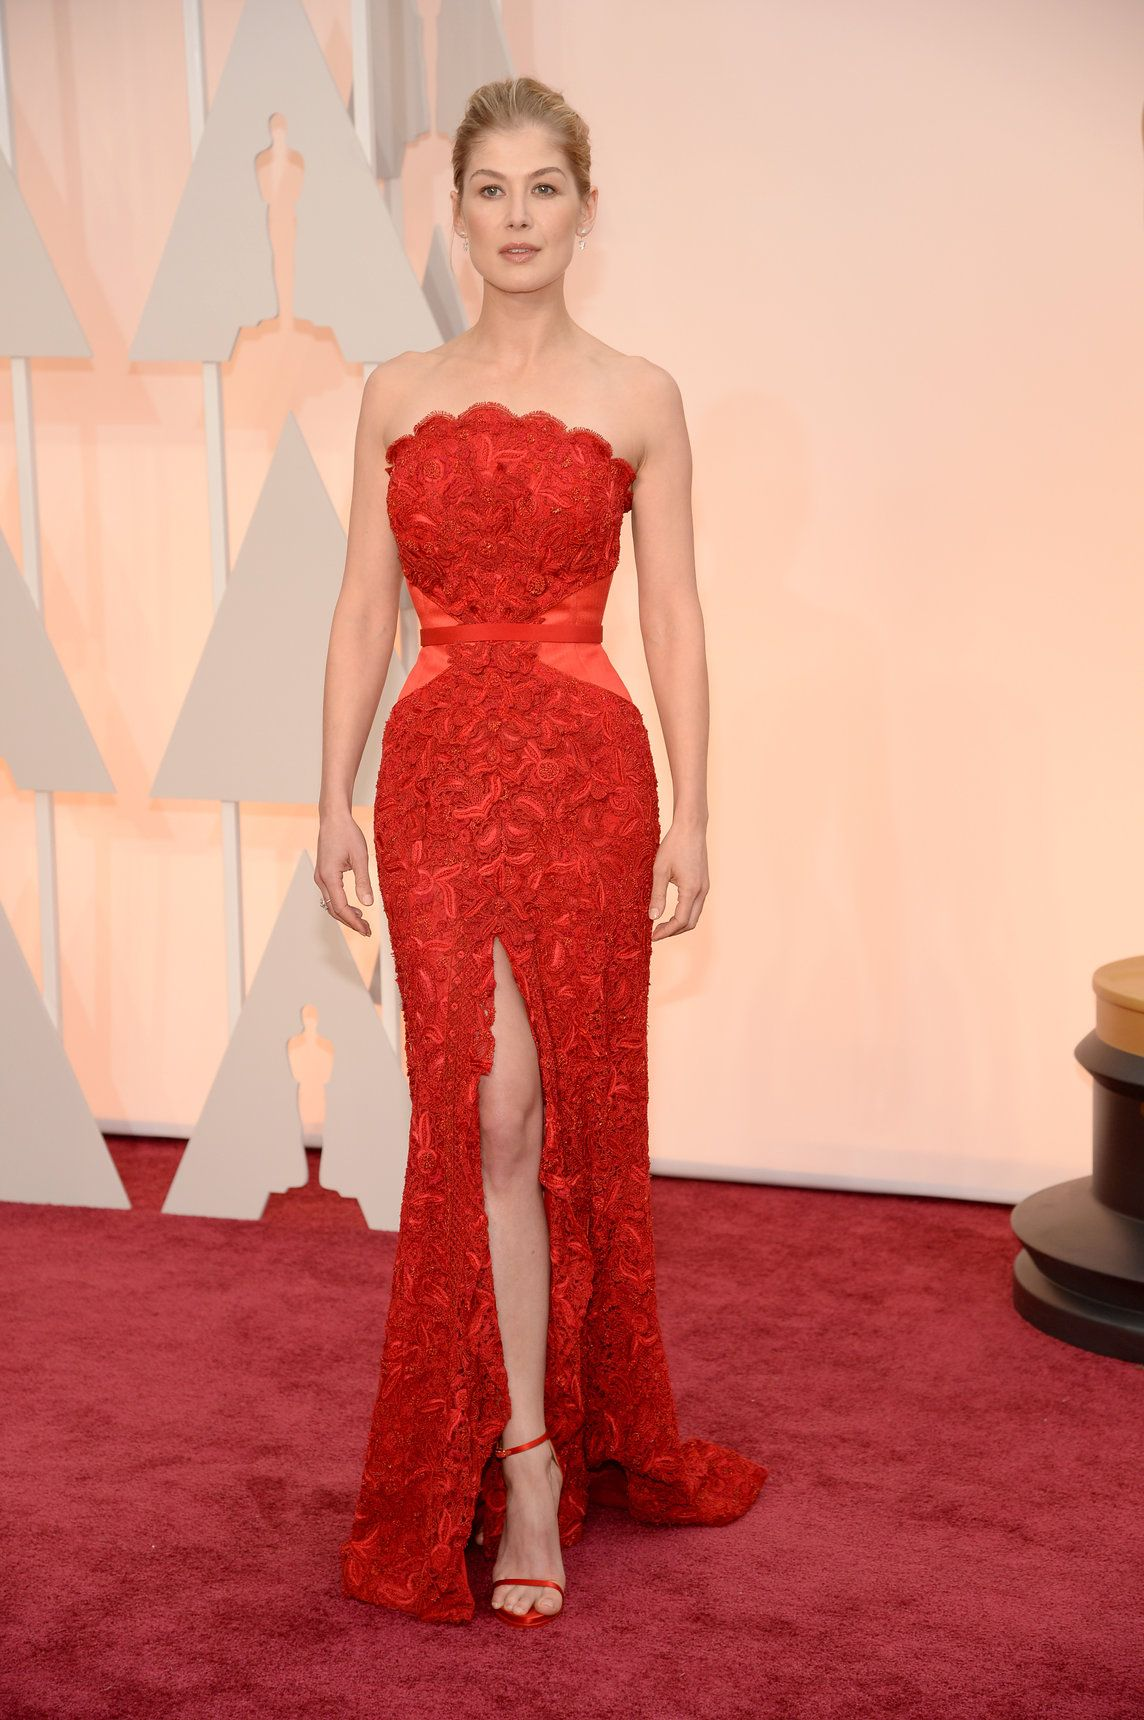 Roter Teppich Schuhe Oscars 2015 The Best Dressed Celebrities On The Red